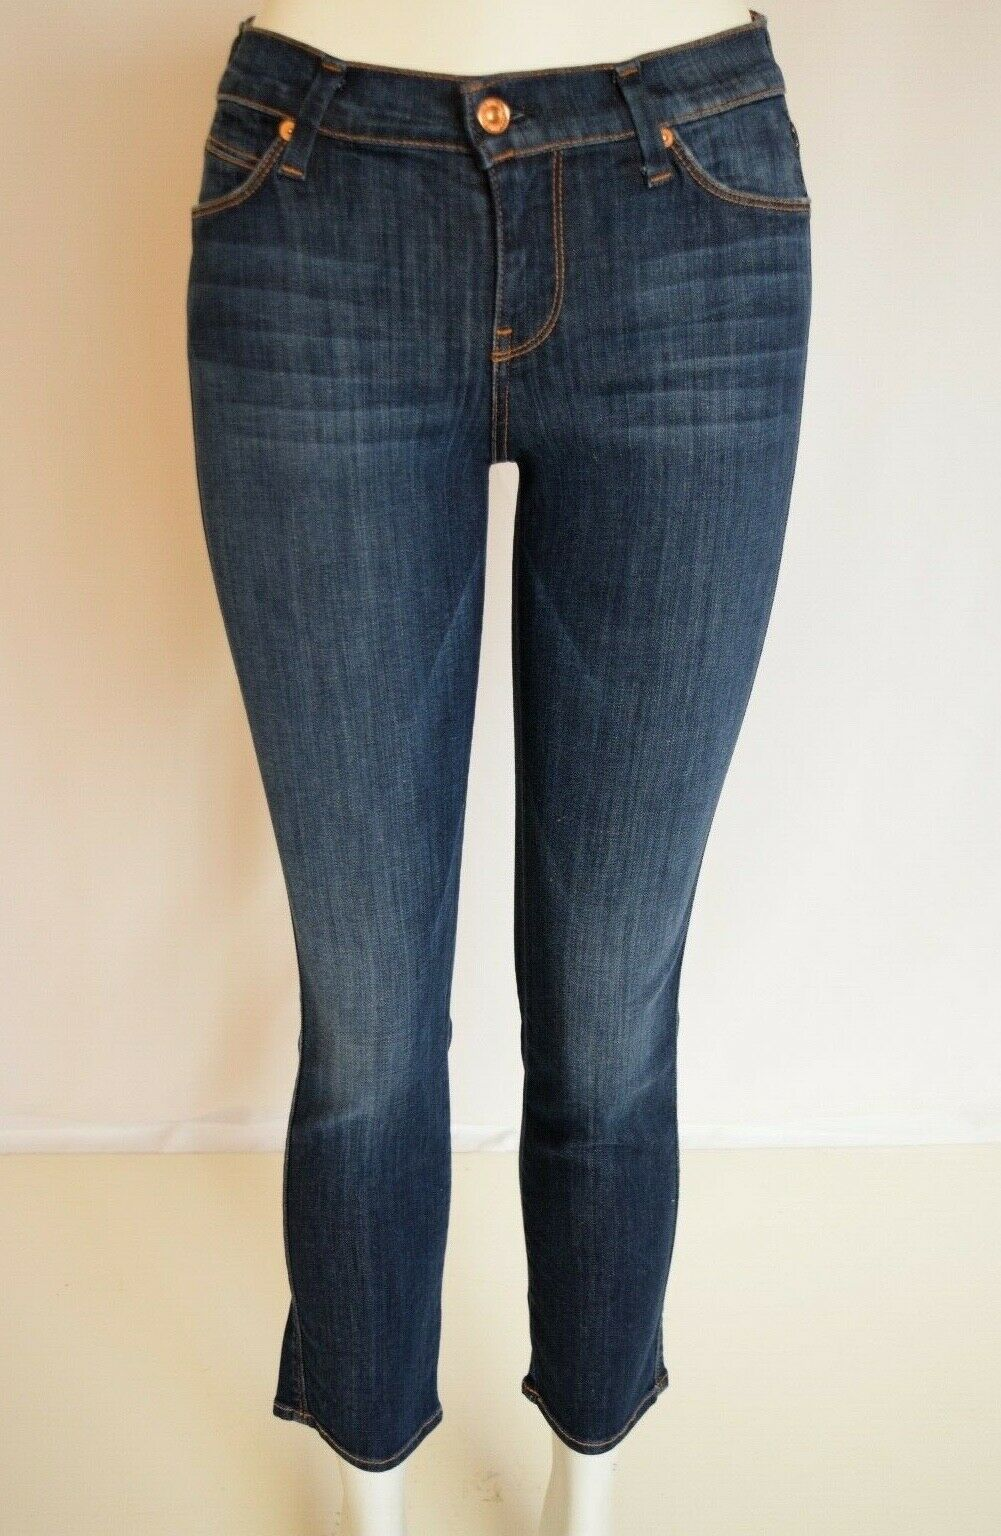 NEW Seven 7 For All Mankind SLIM STRAIGHT Jean Women 26 in SPRING NIGHT